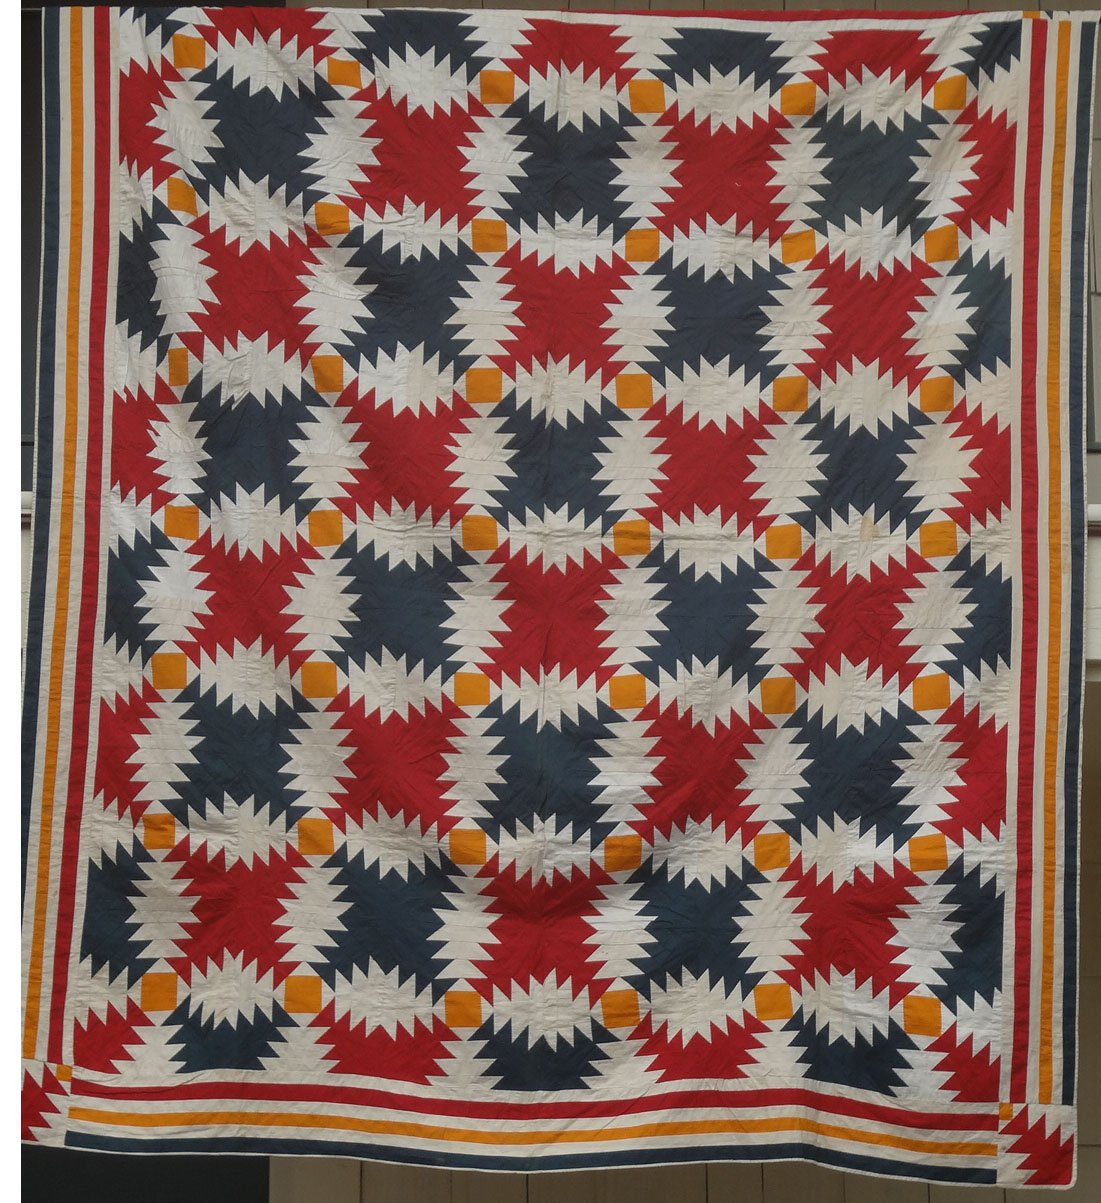 LOG CABIN WINDMILL BLADES ANTIQUE QUILT, Mennonite solid cottons